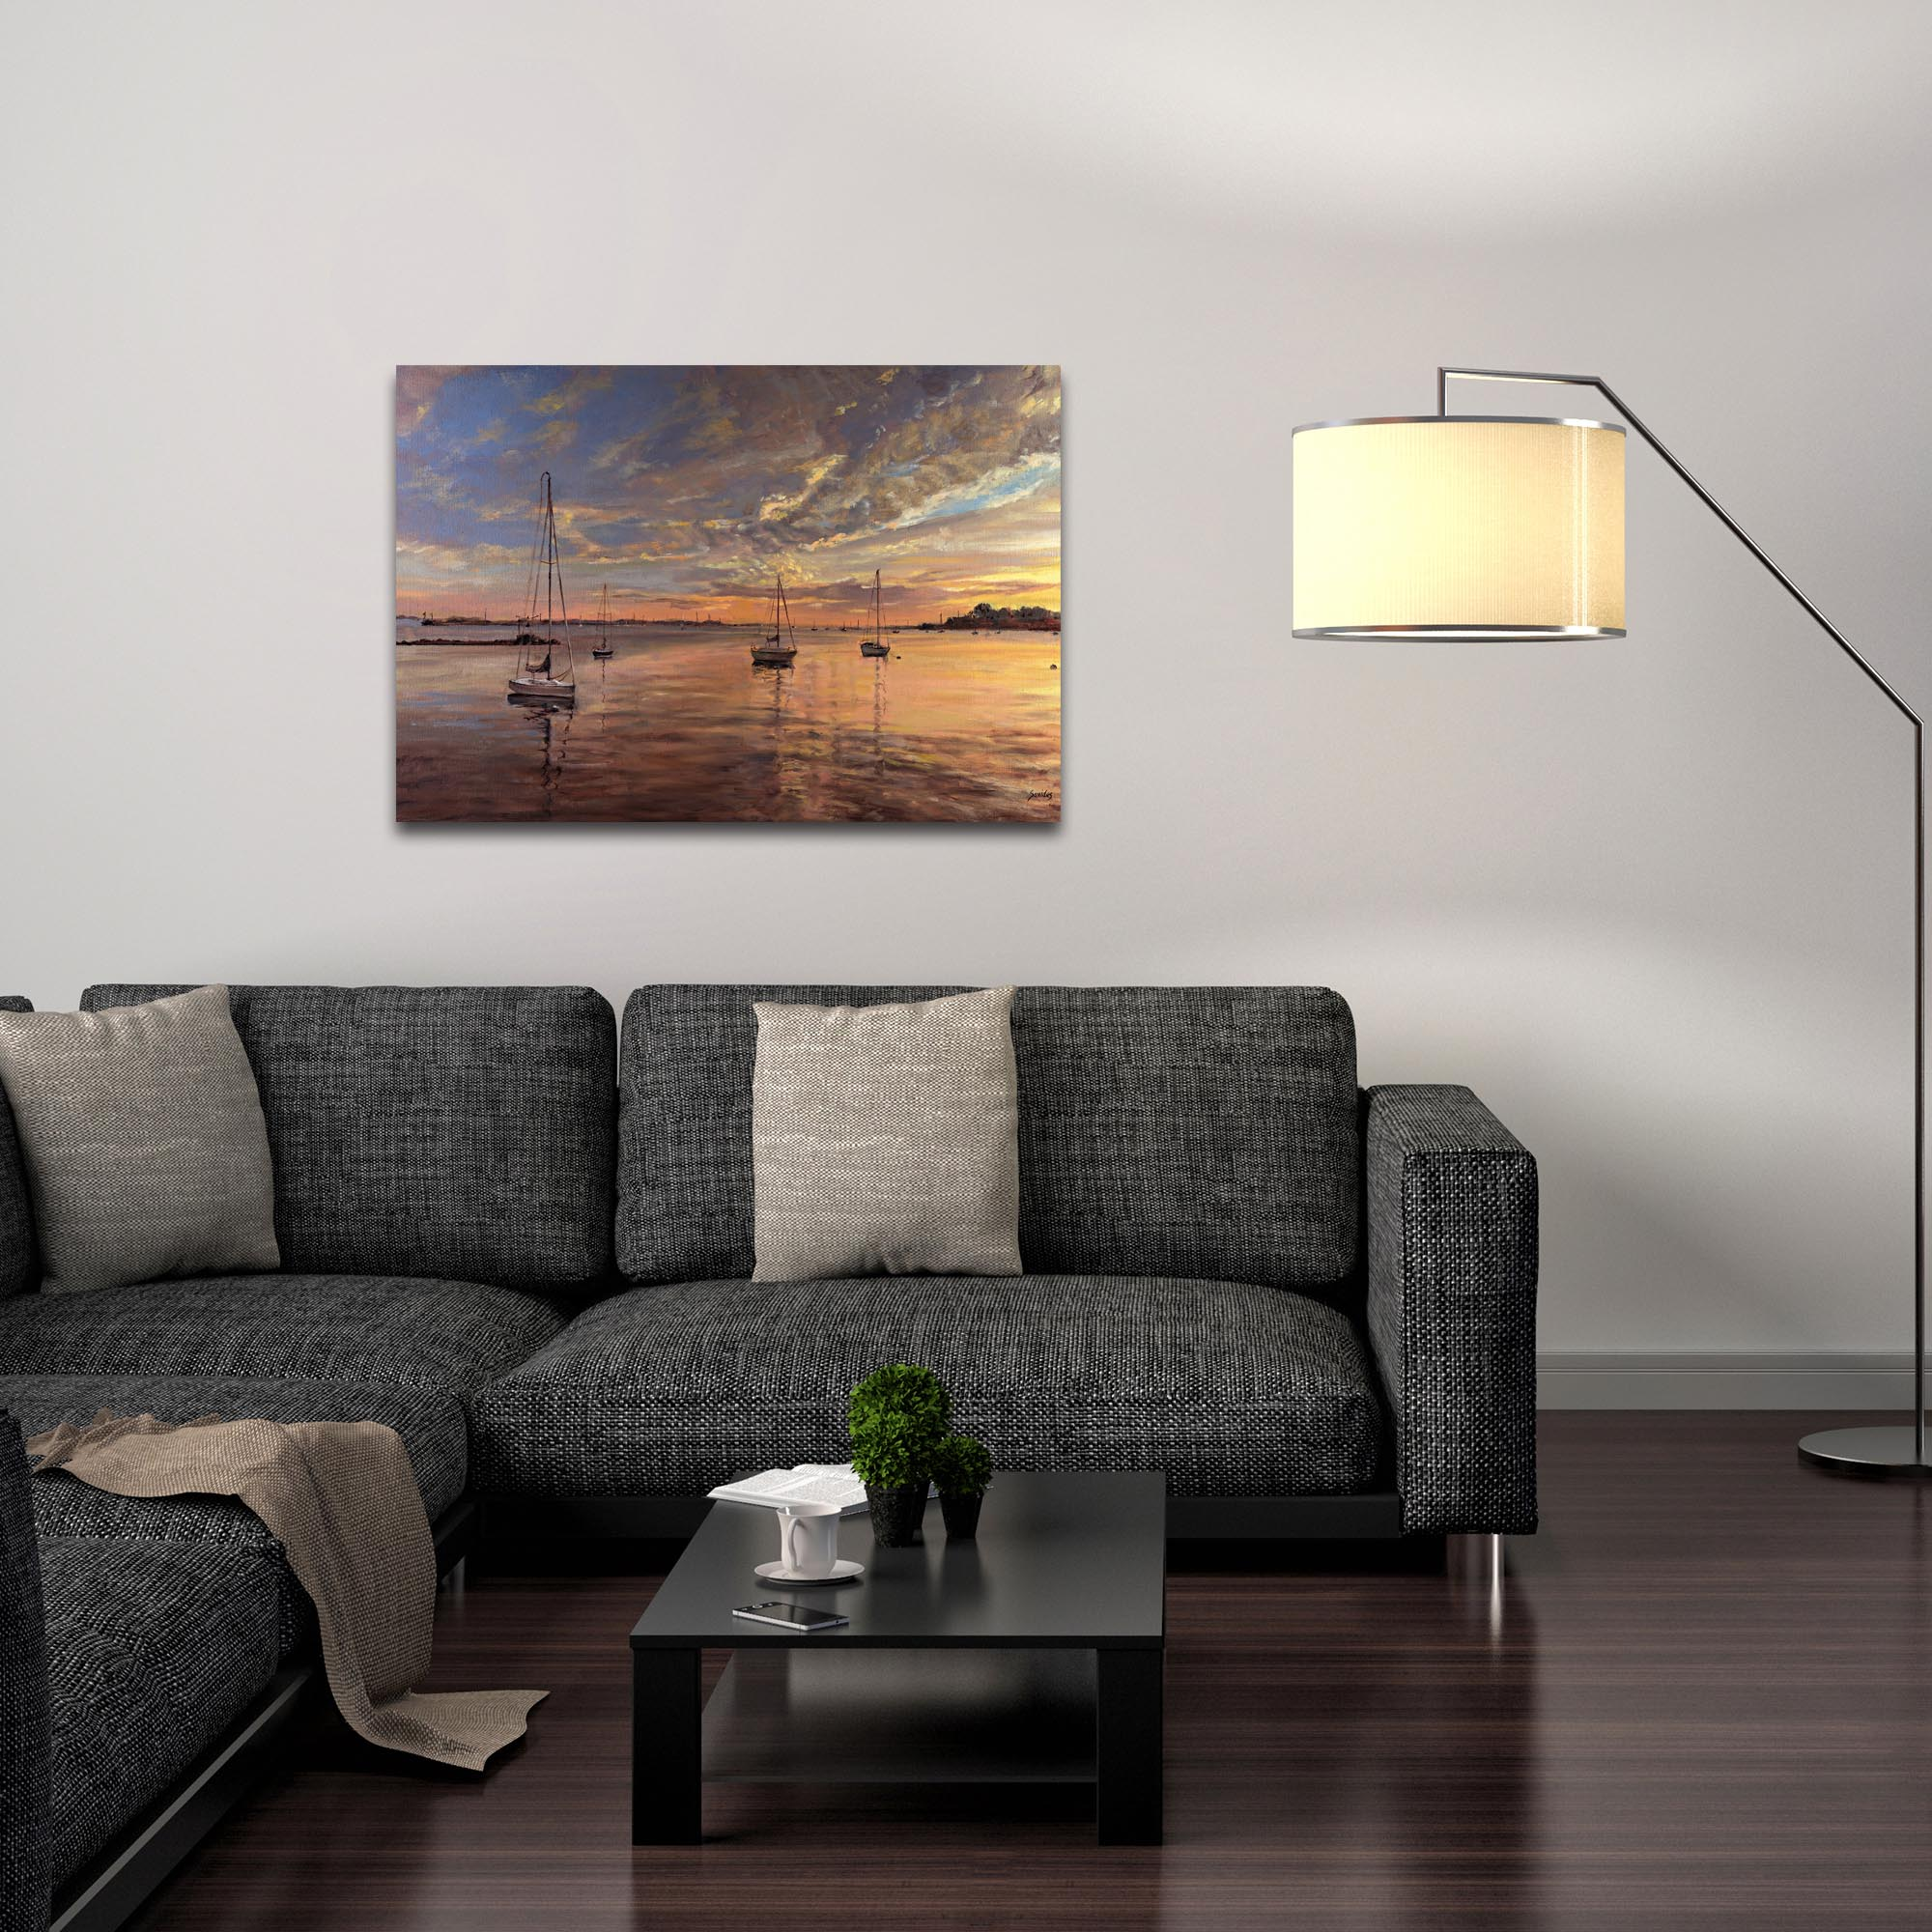 Coastal Wall Art 'Harbor 2' - Boats Decor on Metal or Plexiglass - Lifestyle View